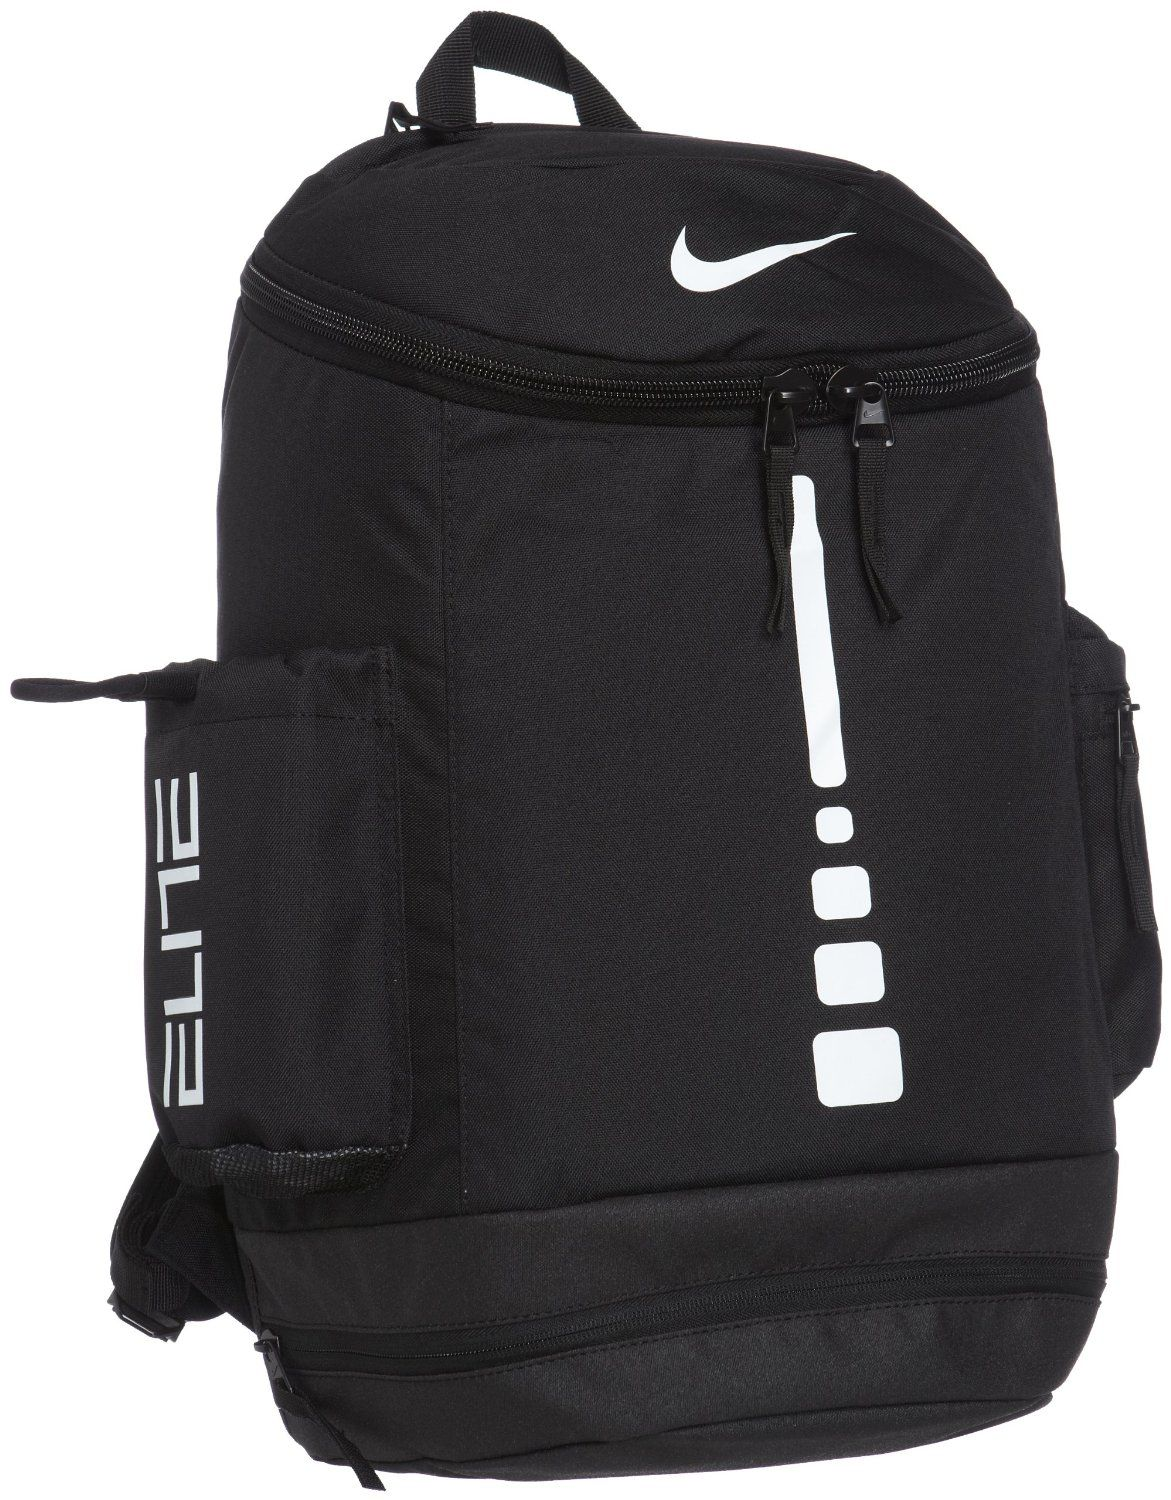 b4866a6ee2 Amazon.com  Nike Male 30 Liters Backpack Bookbag in Black (BA4724-001)   Sports   Outdoors